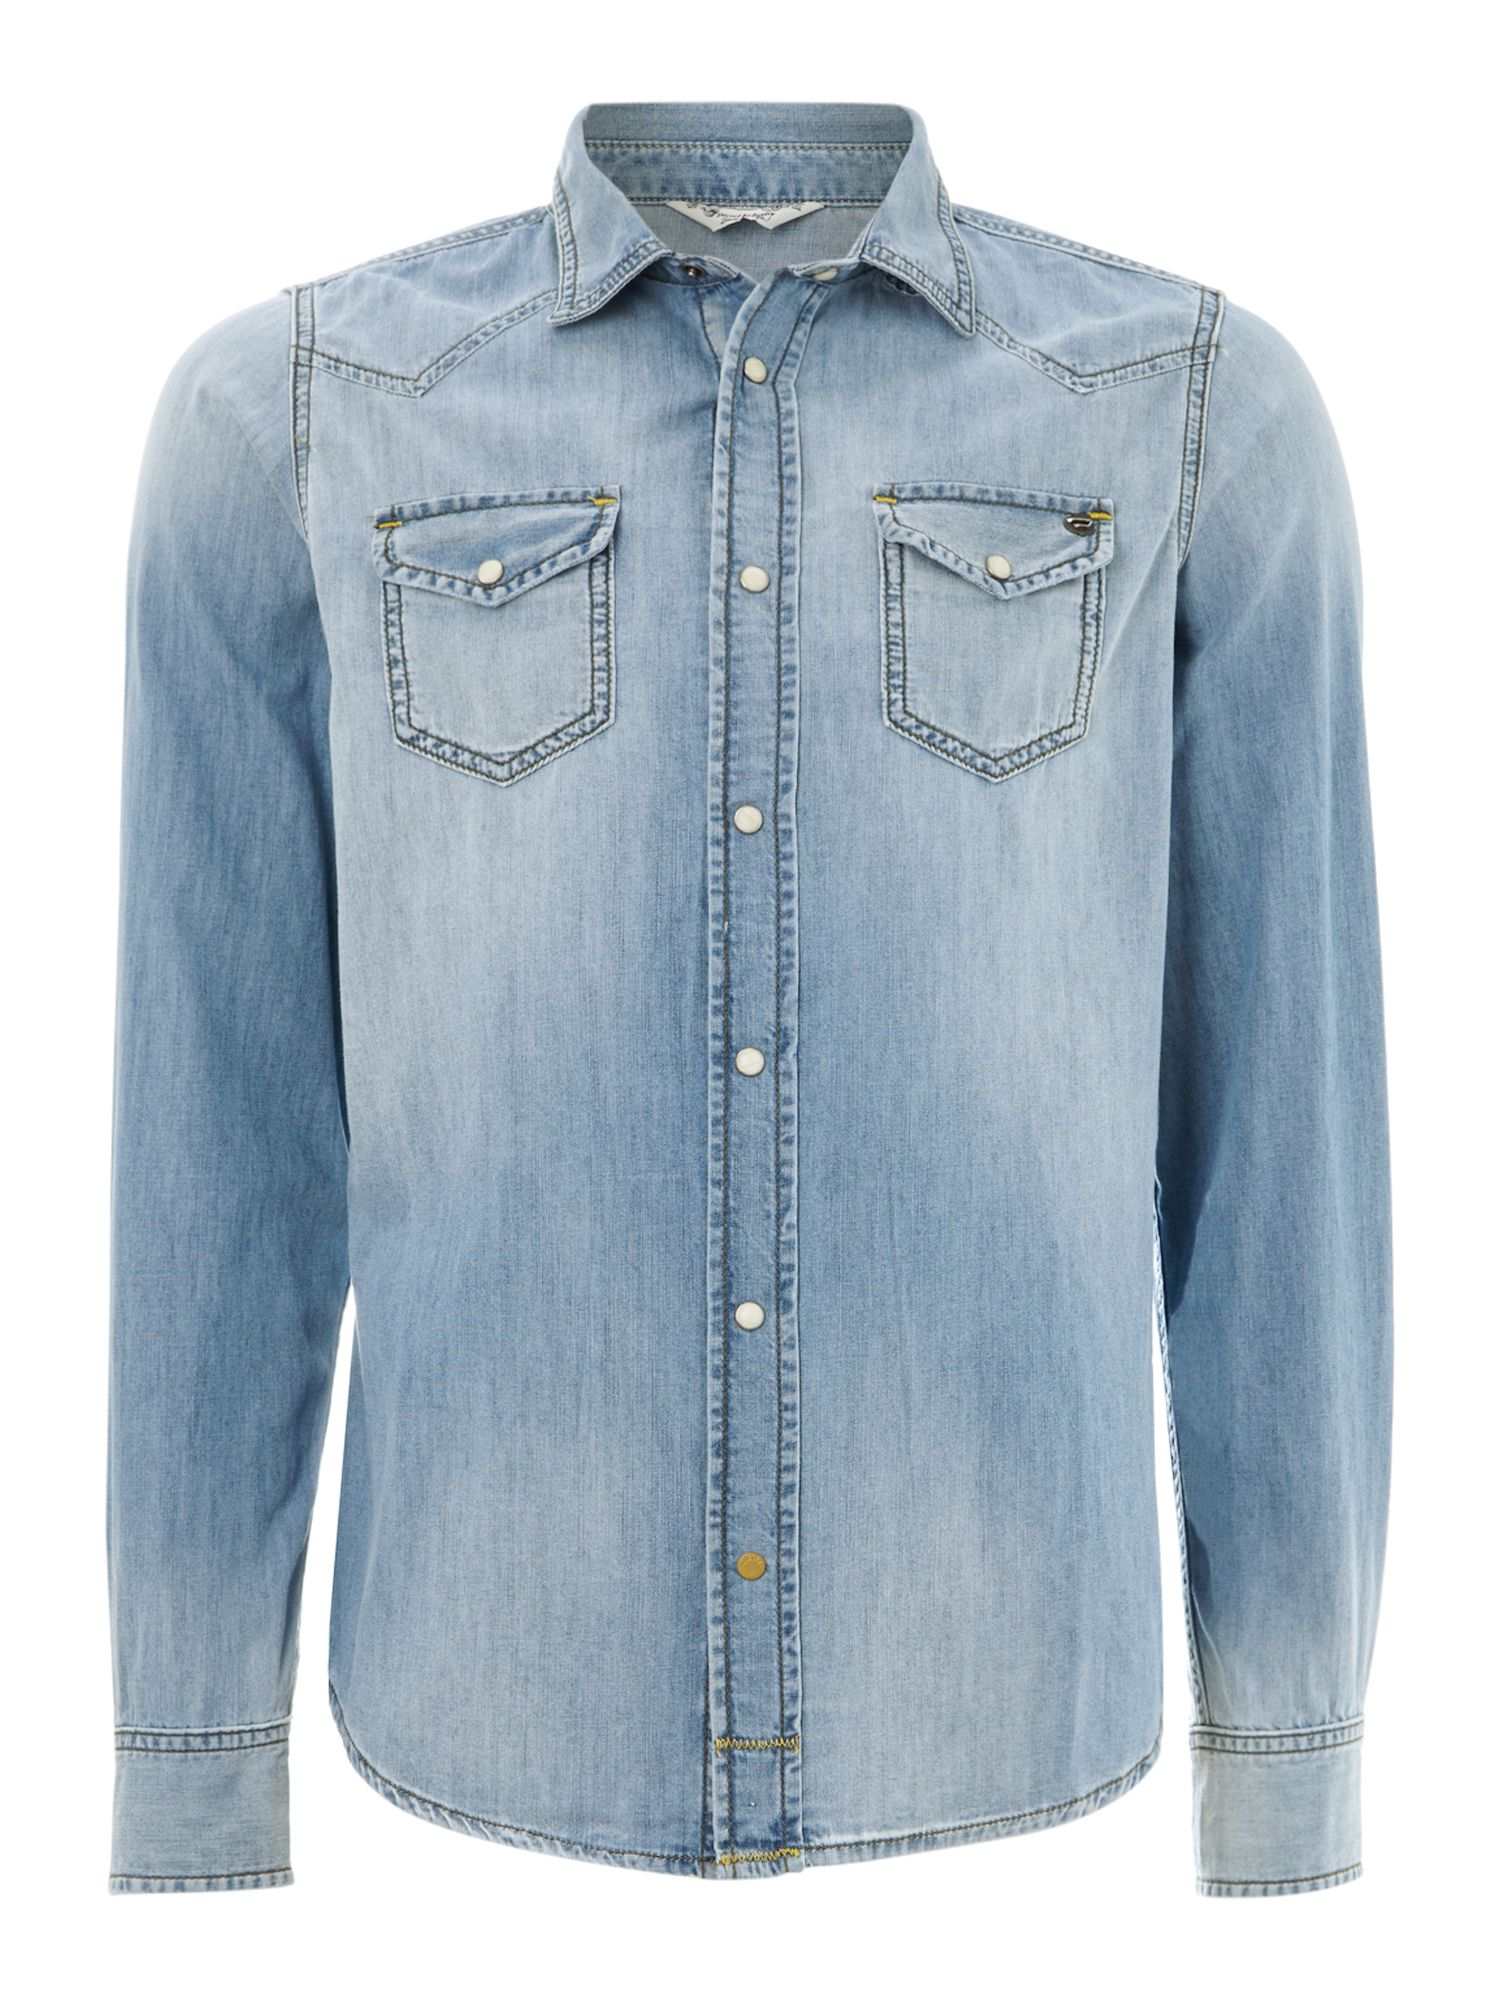 Long sleeve light wash denim shirt